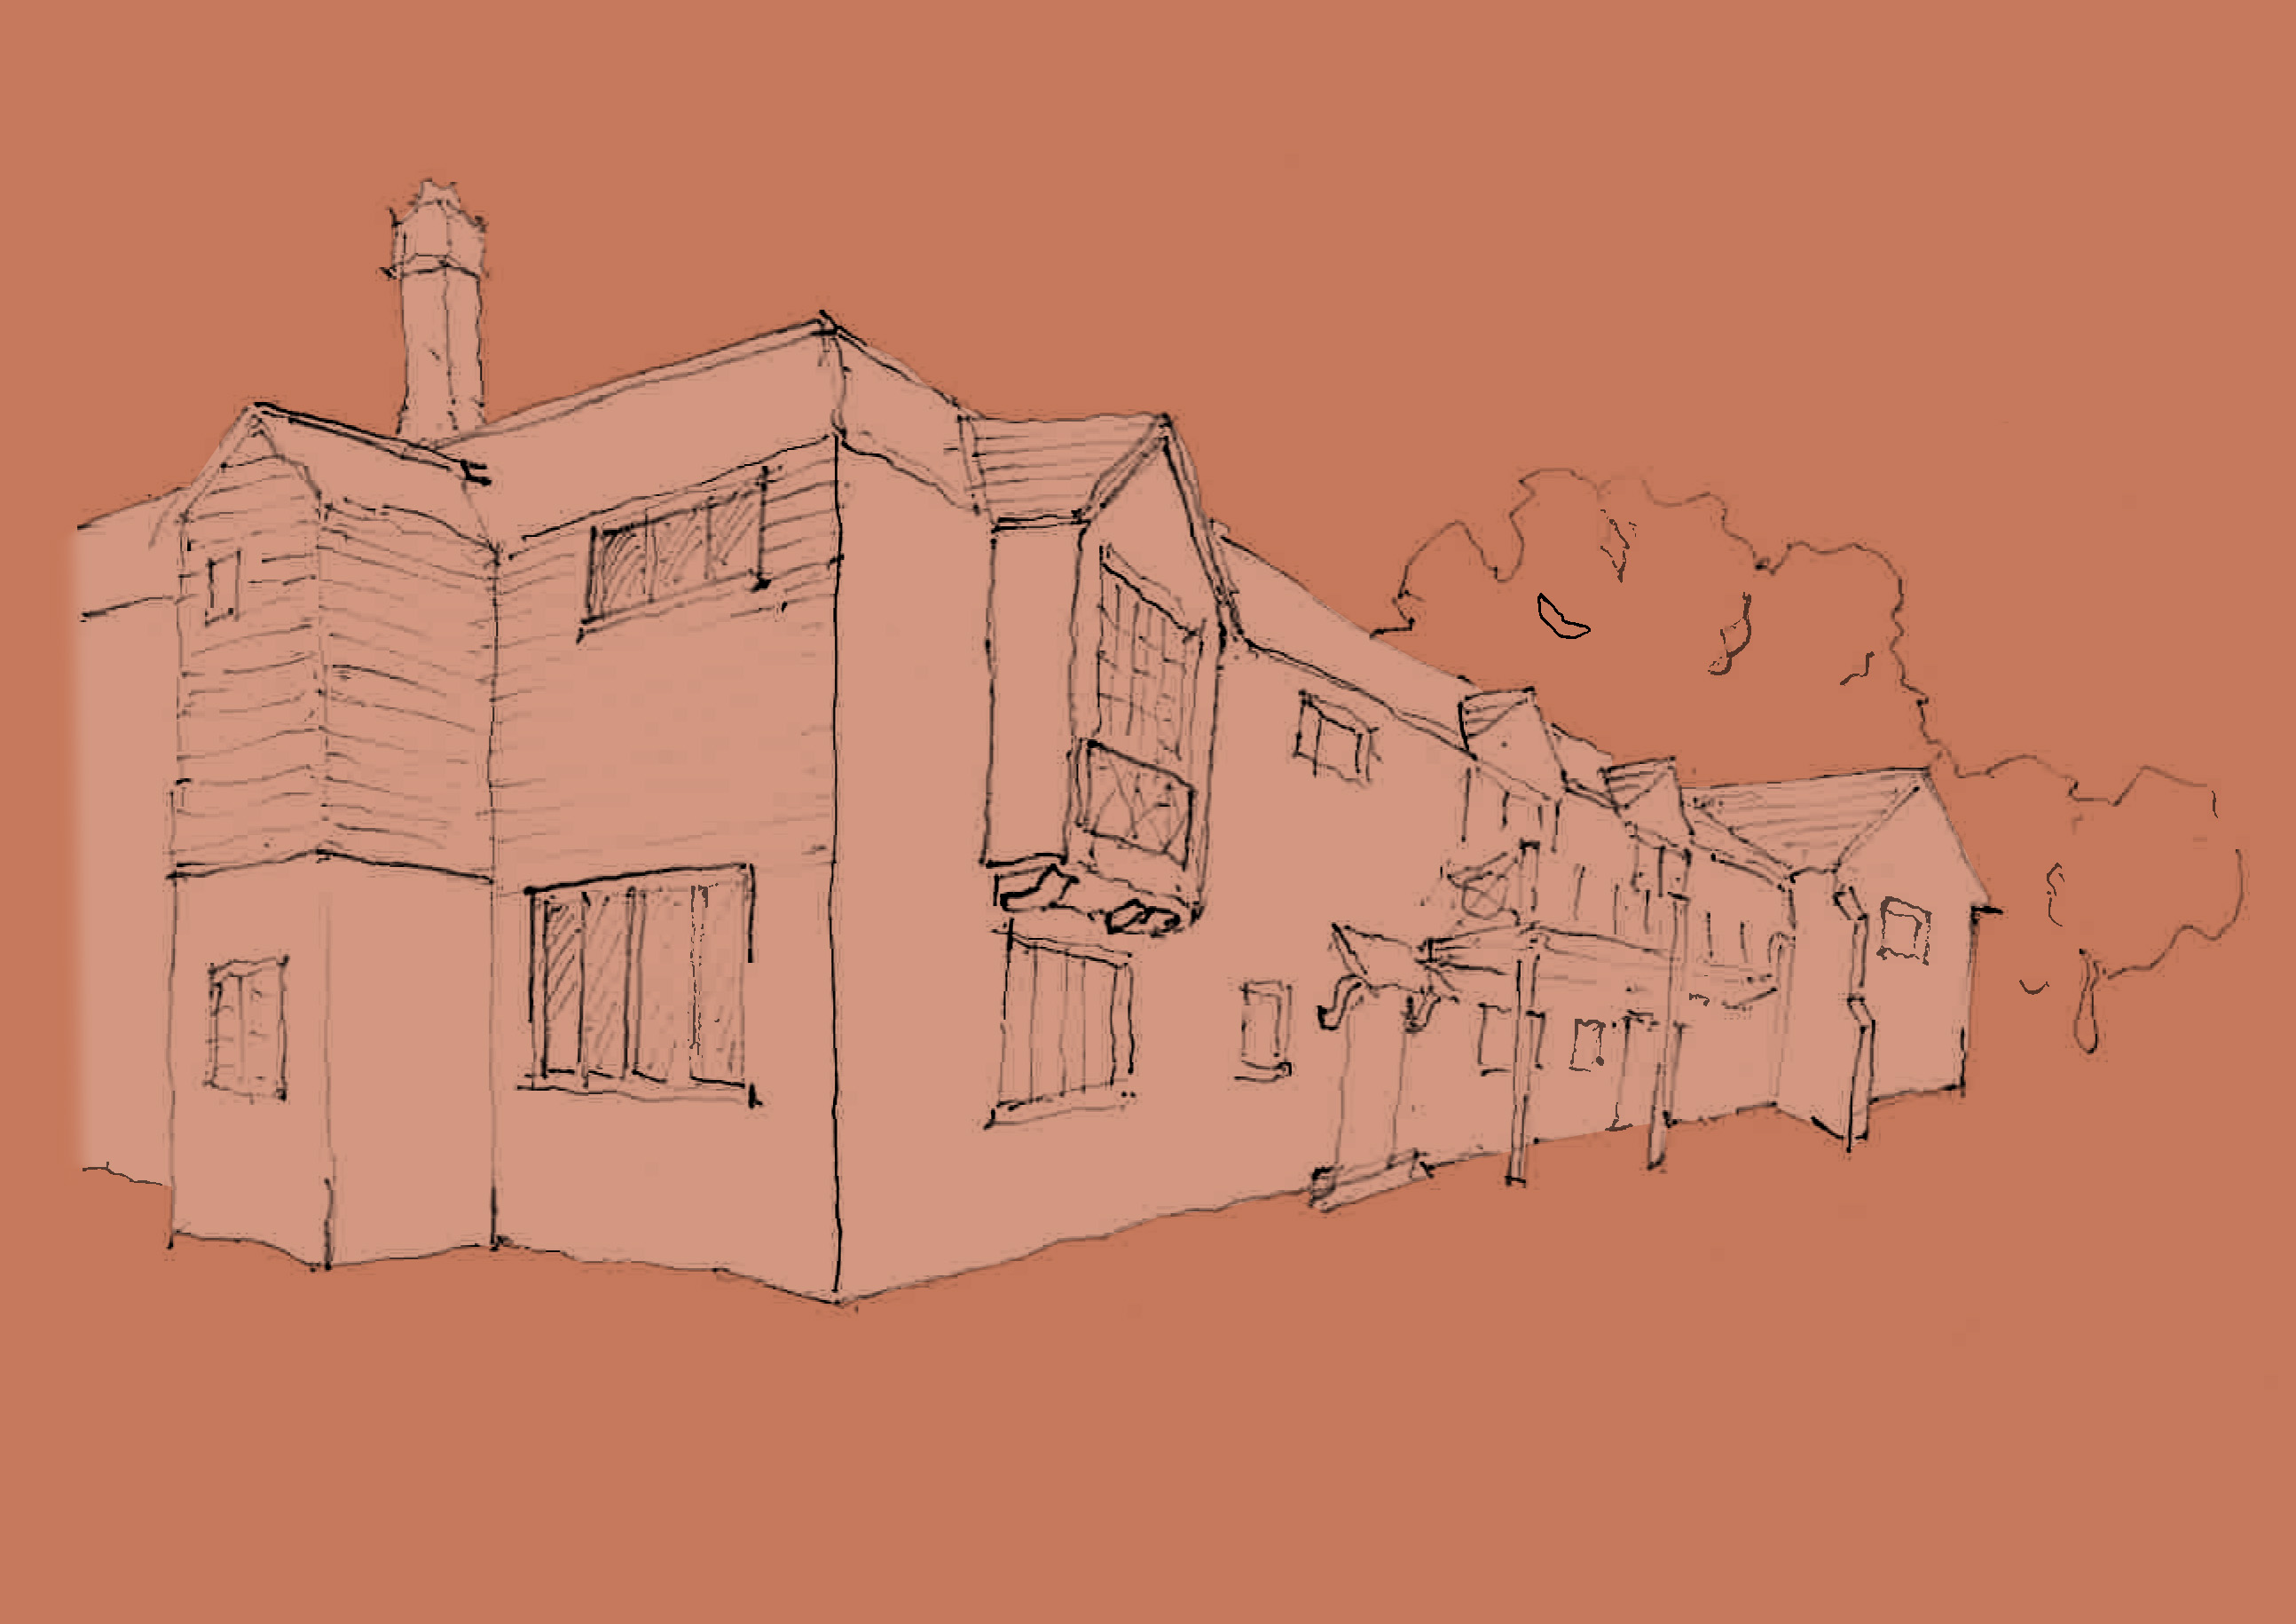 Planning Approval granted for four homes